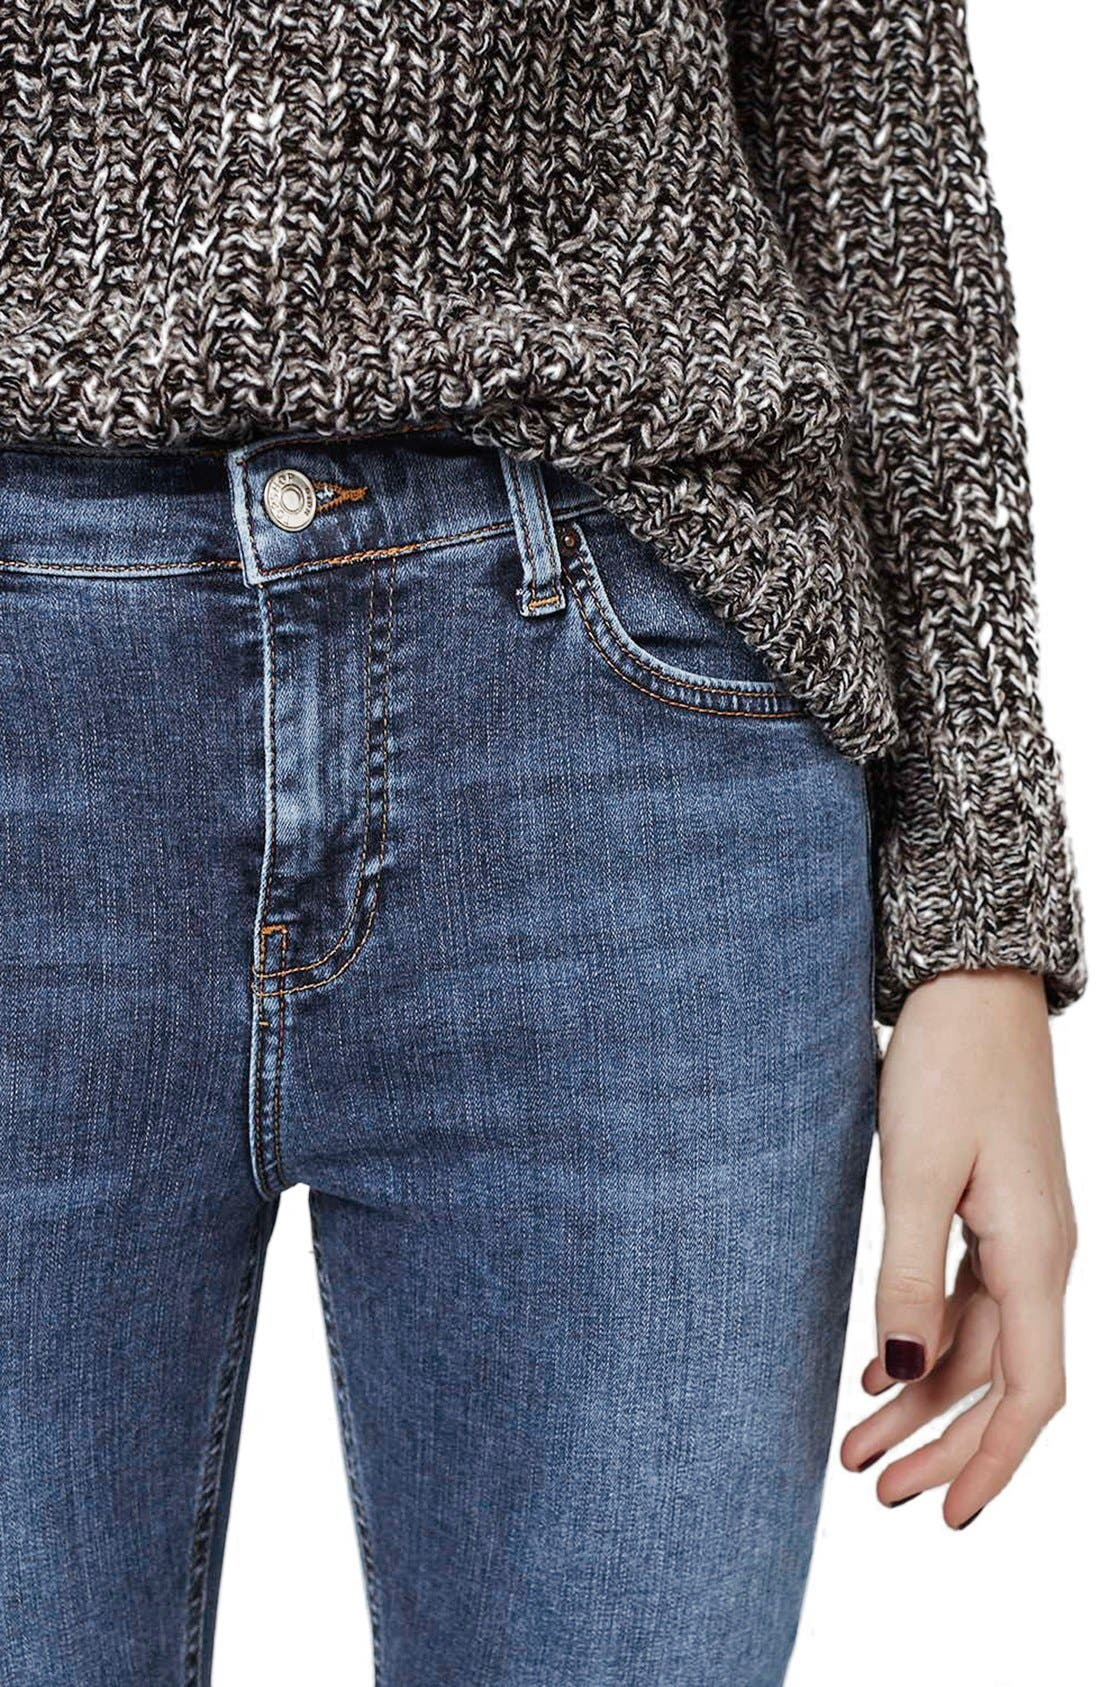 TOPSHOP, 'Jamie' High Rise Ankle Skinny Jeans, Alternate thumbnail 6, color, MID DENIM